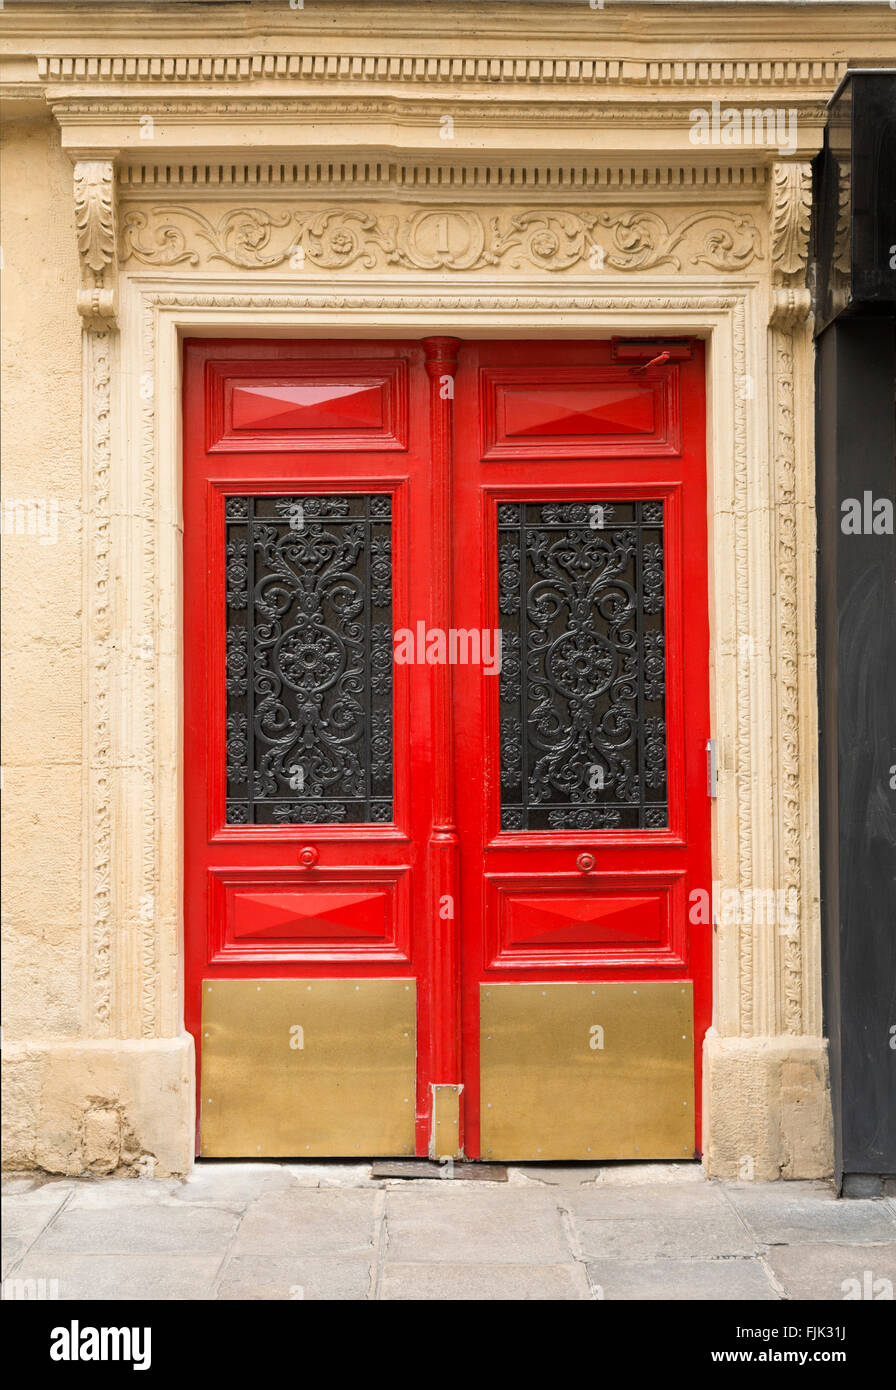 Typical architectural detail of red doors with wrought iron panels, Paris, France - Stock Image